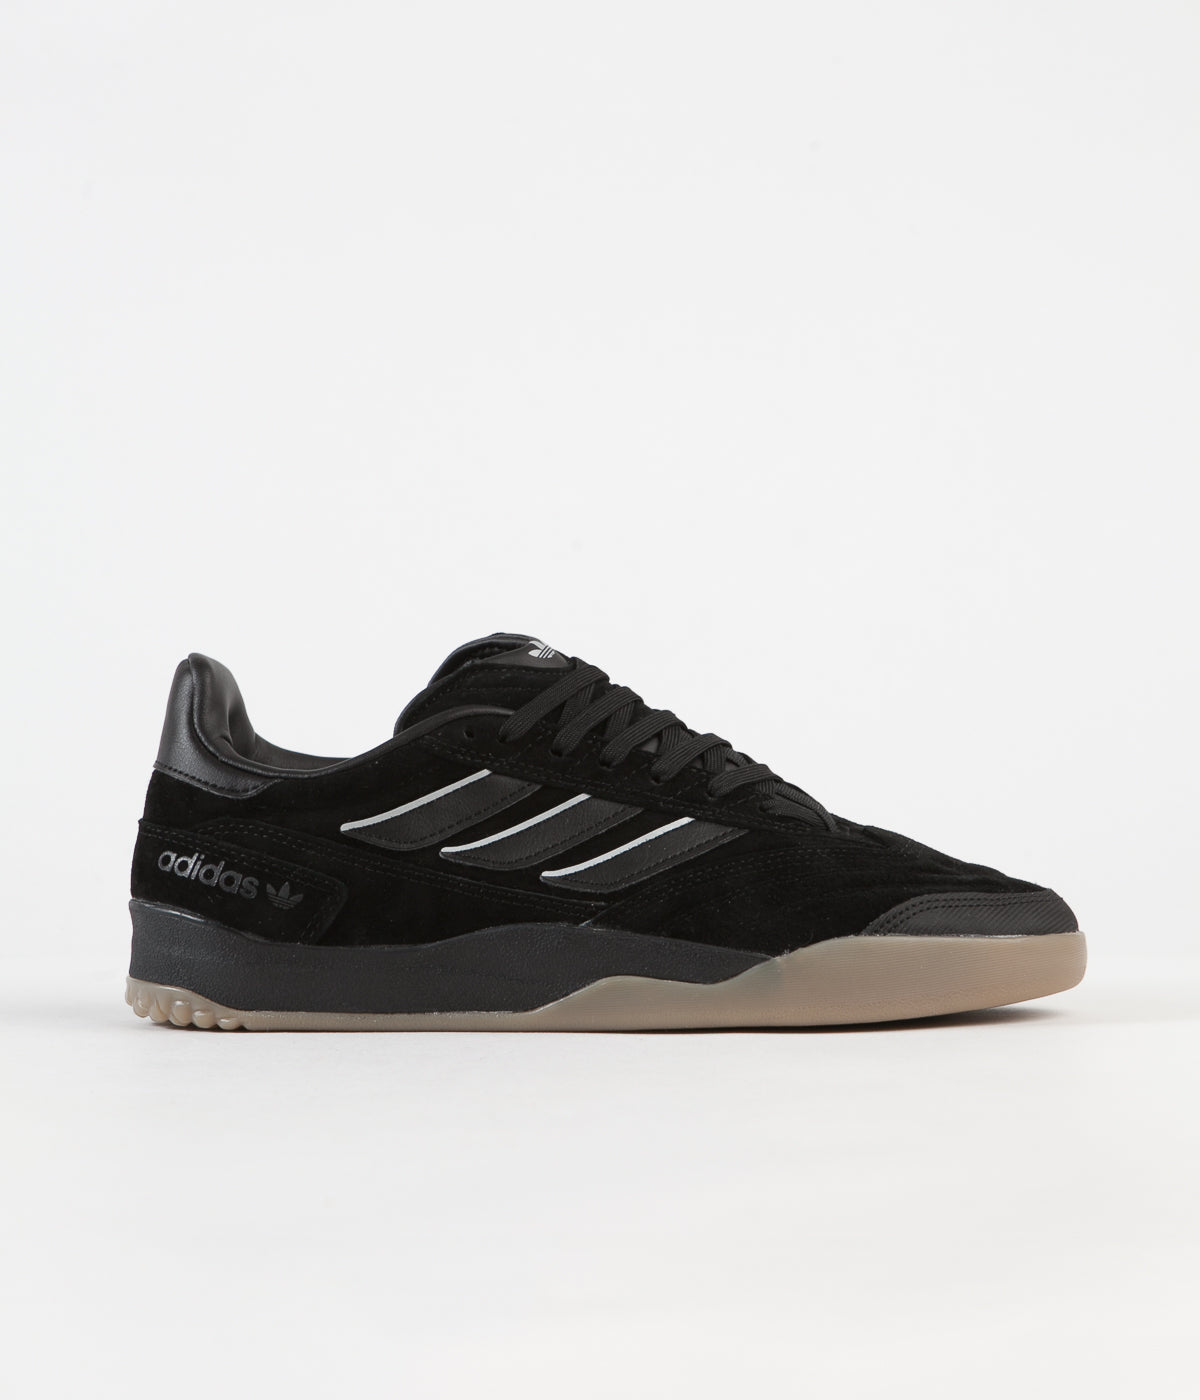 Adidas Copa Nationale Shoes - adidas avanti spikes sneakers black gold shoes